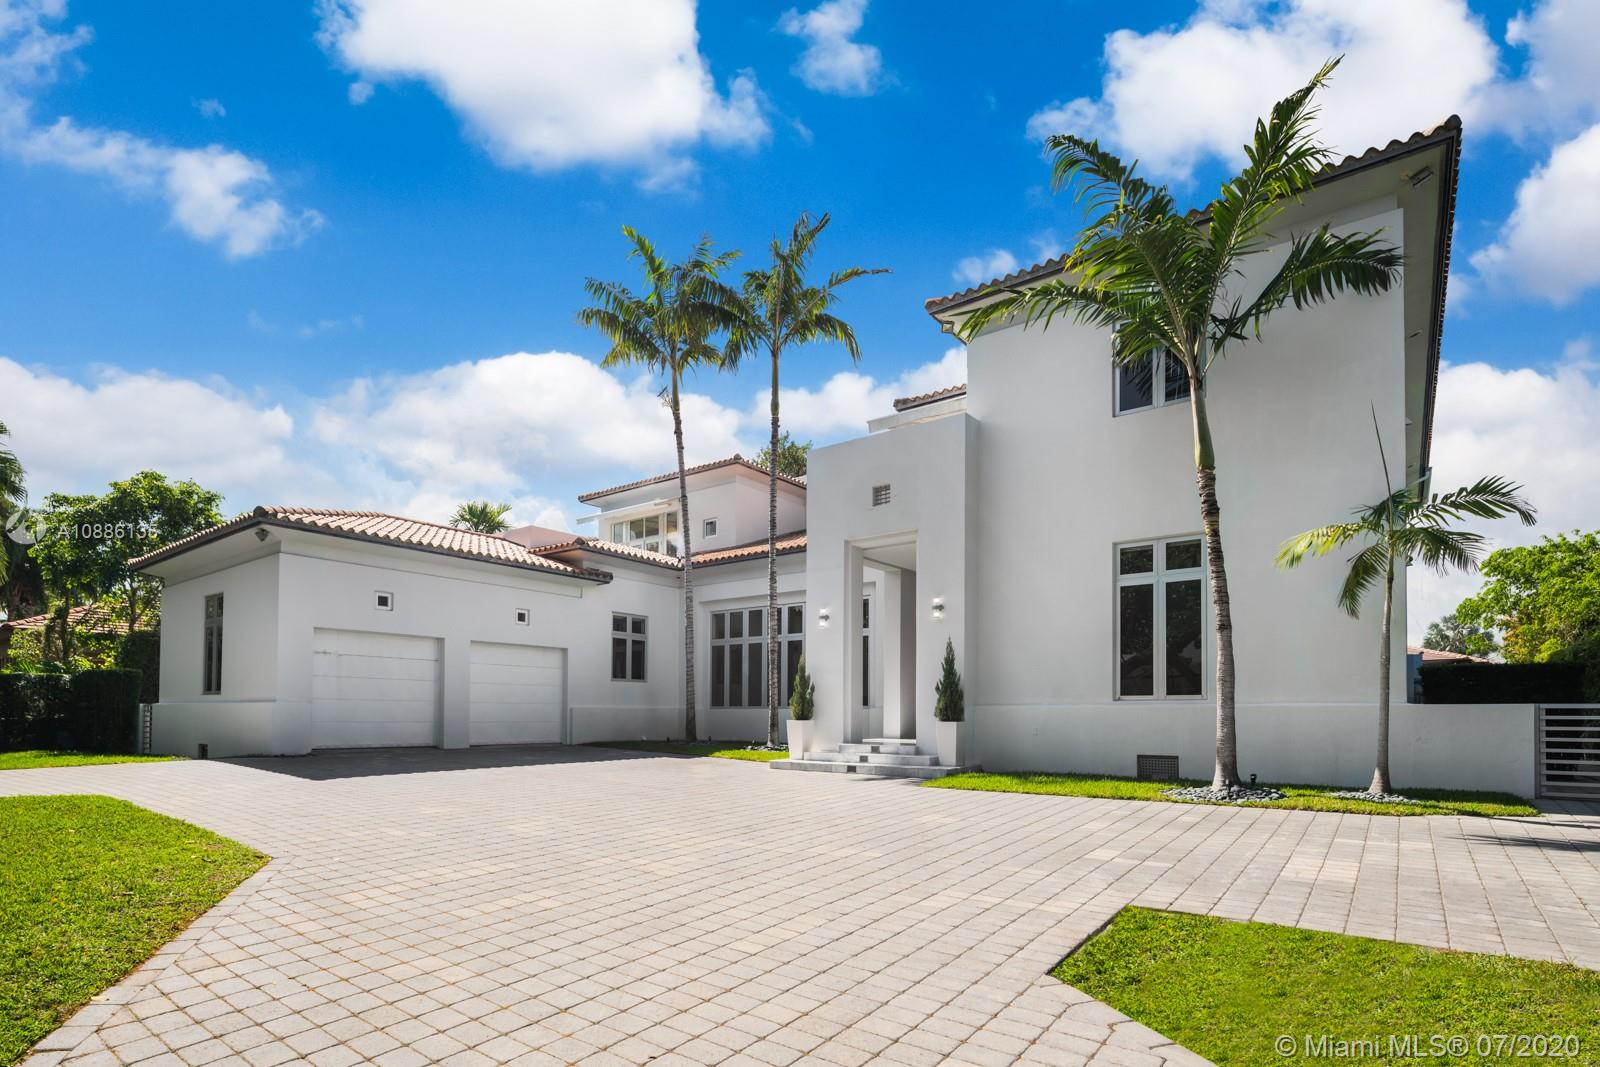 Tucked away in the prestigious gated community of Cocoplum in south Coral Gables, this custom-built 6-bed, 6-bath modern family home offers flawless upscale living. High ceilings, extra-tall impact windows, and gleaming white marble floors fill the home with light. Open layout flows directly to huge covered terrace, patio, and large salt-chlorine heated pool with spa for indoor/outdoor living at its finest Oversized chef-grade kitchen features top-of-the-line cabinetry, fixtures, and appliances, and connects to main family room for entertaining. Billiard room, bar, guest suite and maid's quarters all on 1st floor. Family bedrooms (all suites) and lavish master suite with sun deck on 2nd floor. Whole home generator, smart tech with mobile controls, elevator, and utility room also included